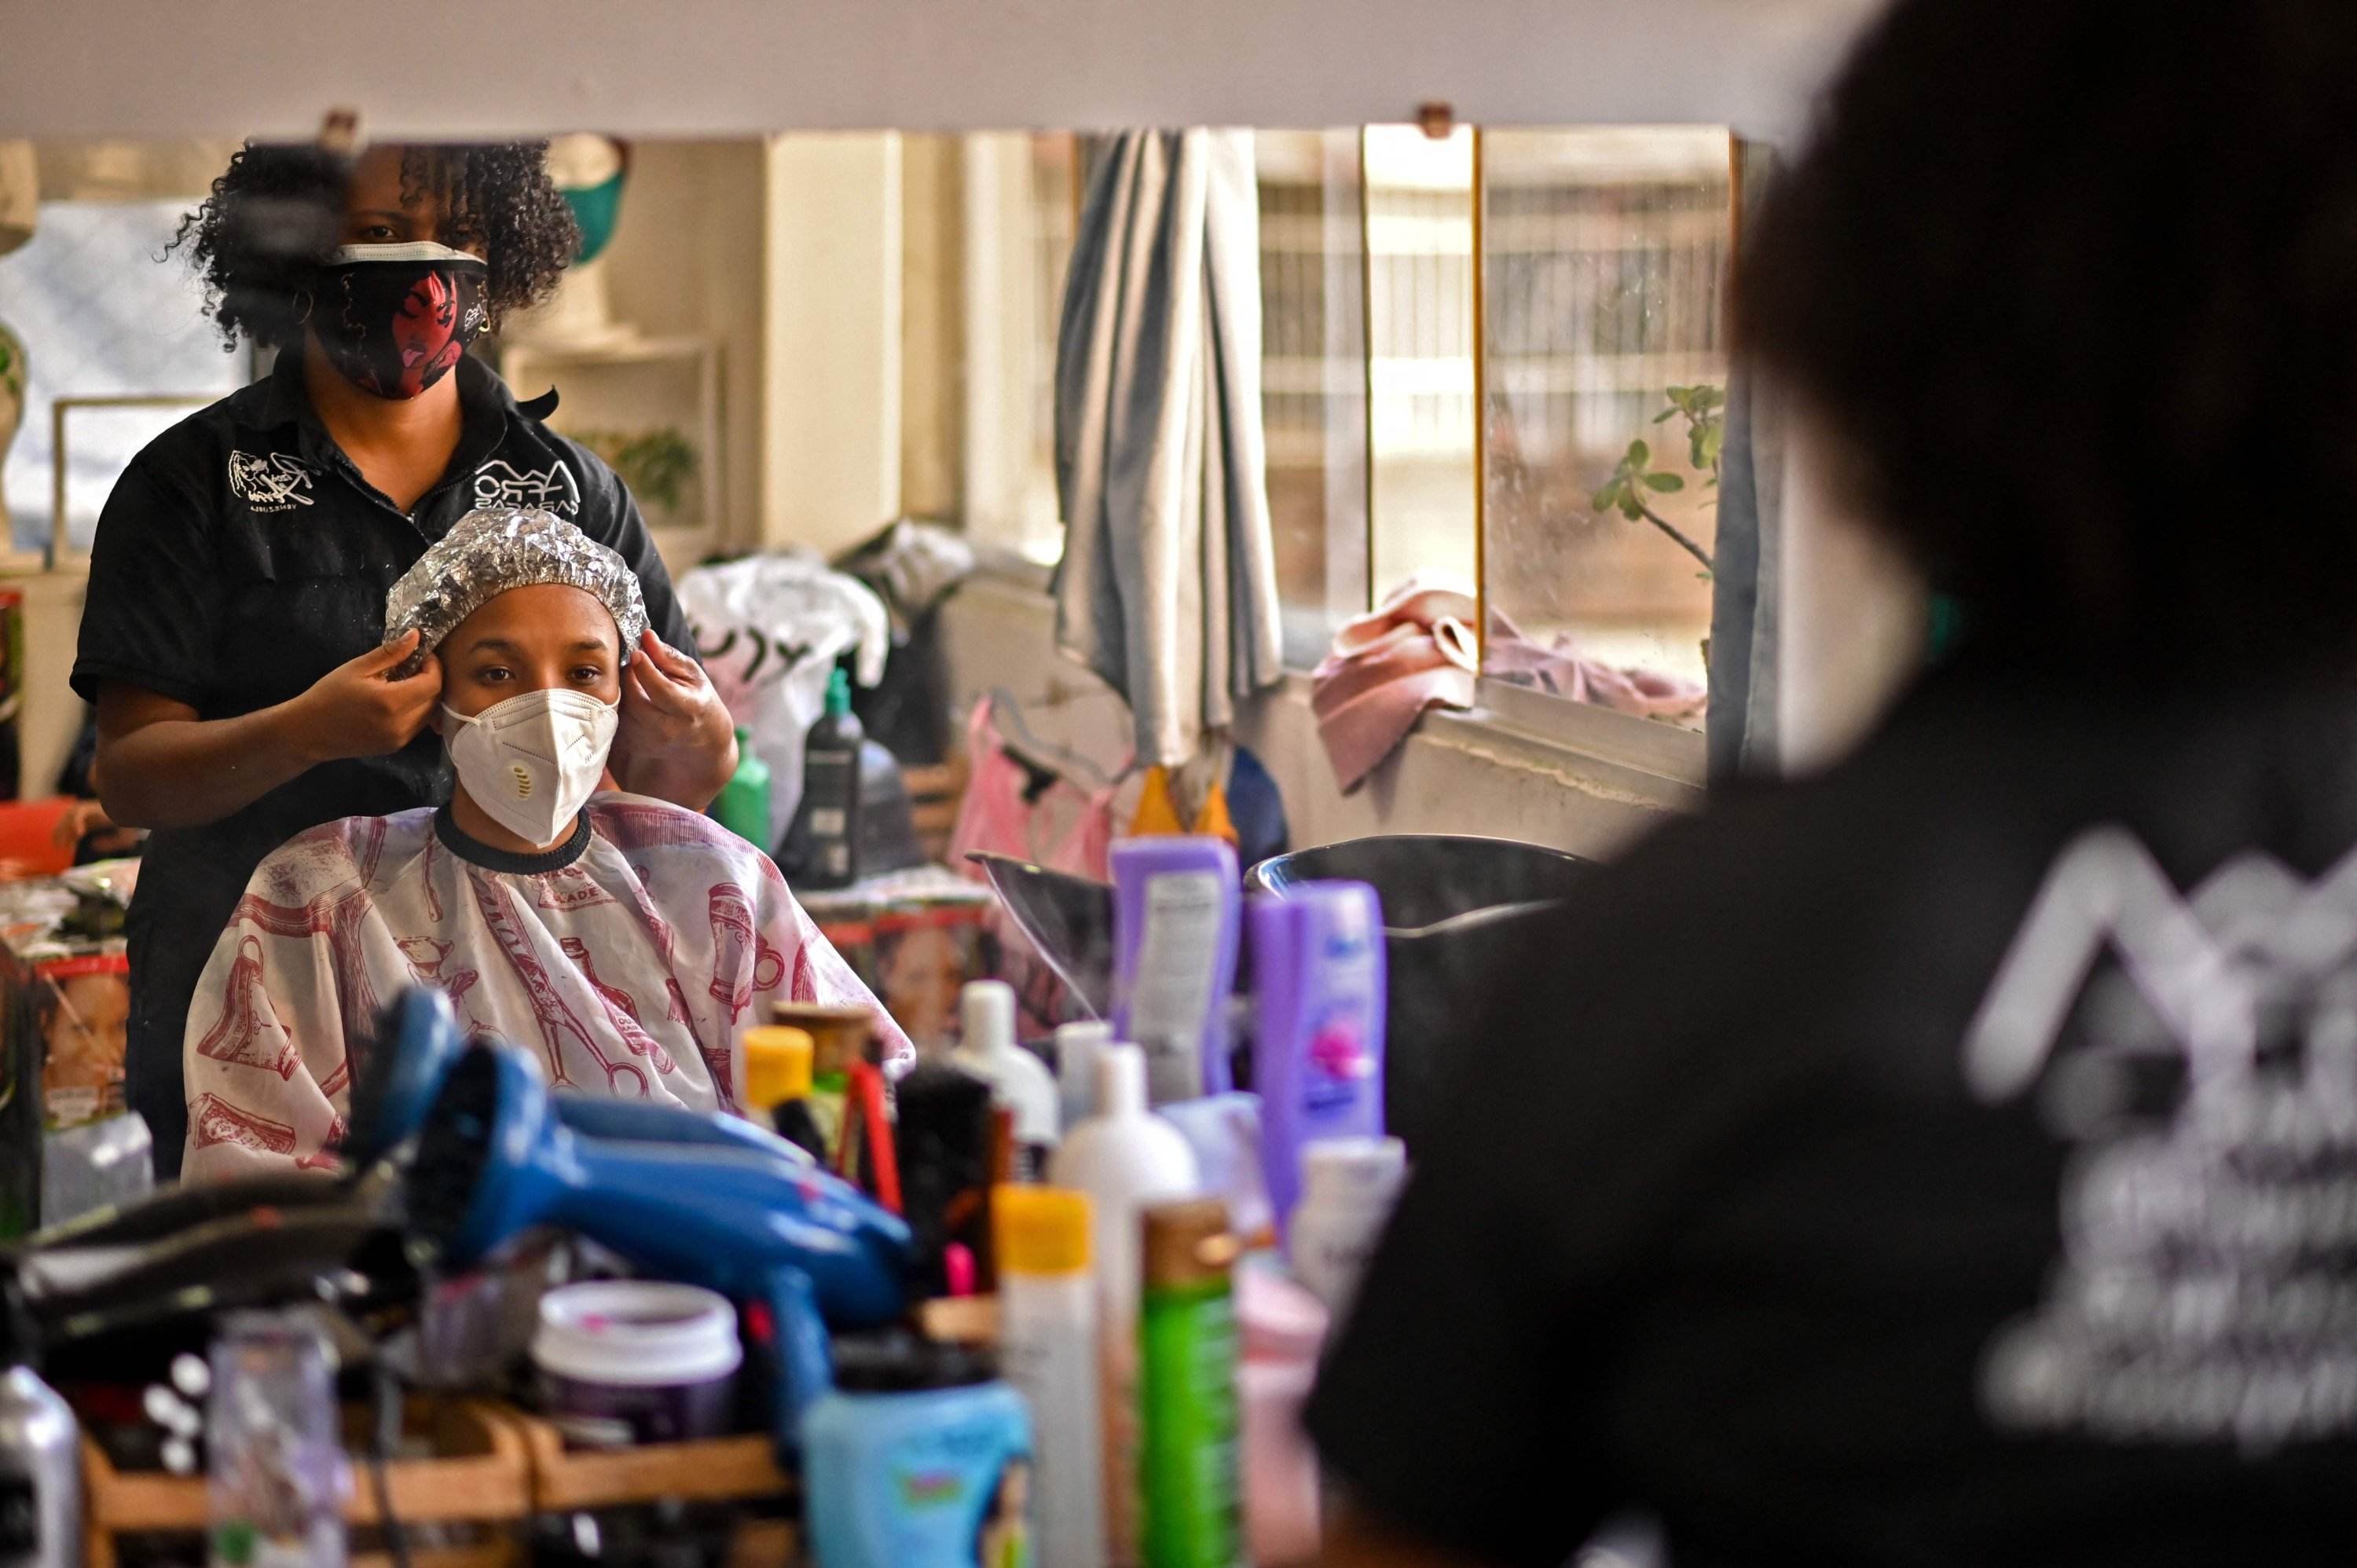 A customer prepares to get a haircut at a hairdresser's, in downtown Caracas, Venezuela, Sept. 1, 2021. (AFP Photo)